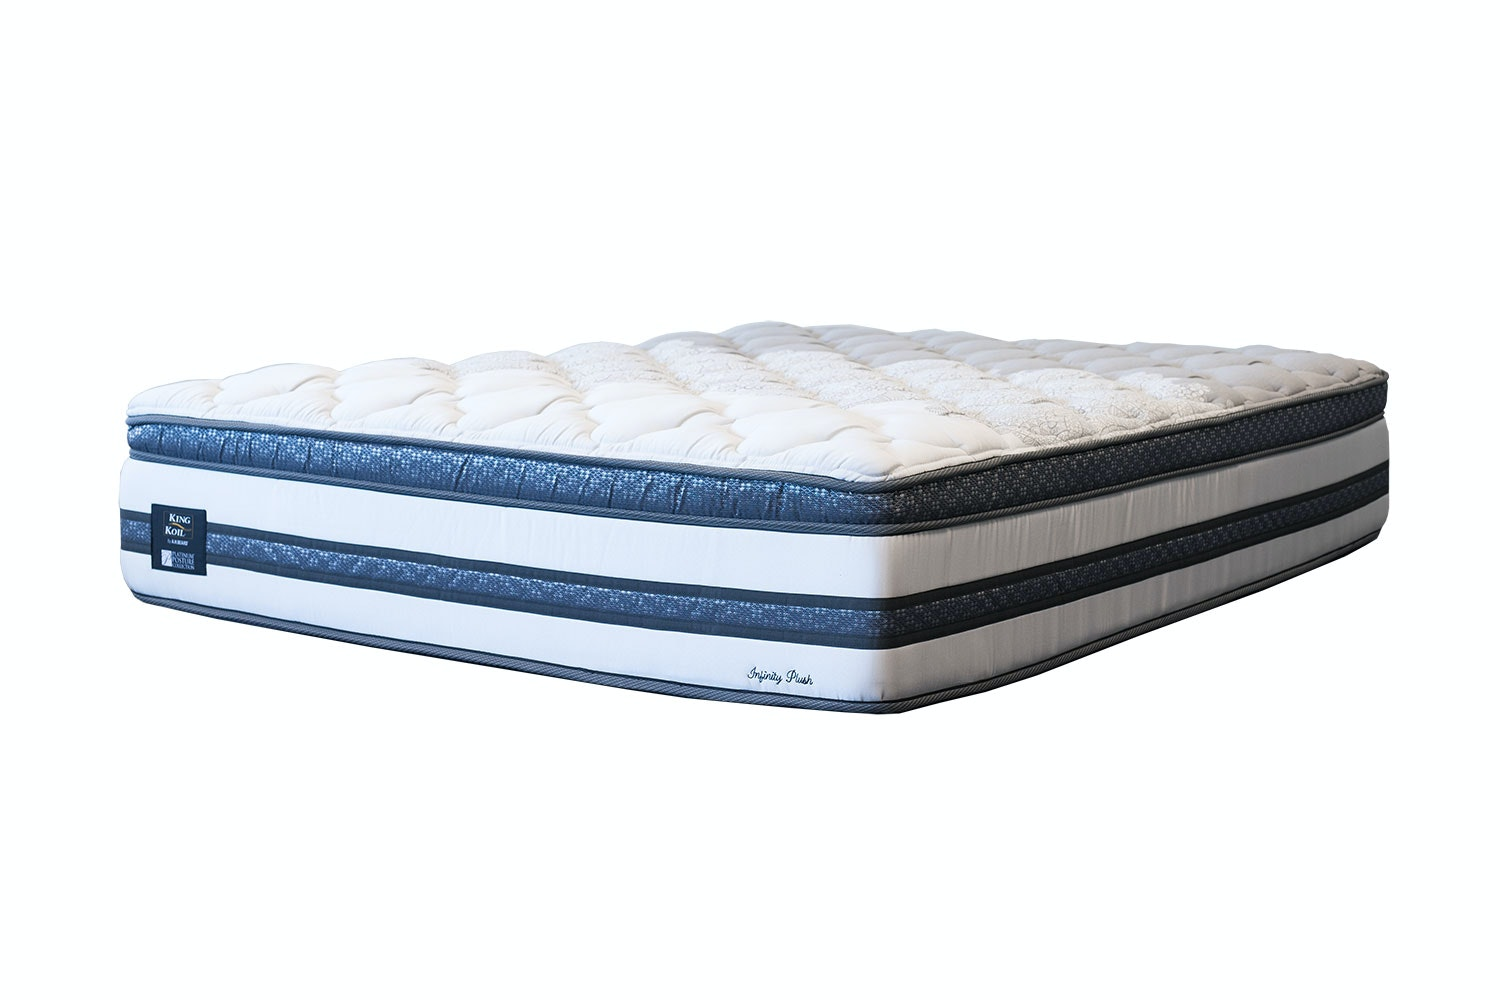 Infinity Plush King Single Mattress by King Koil